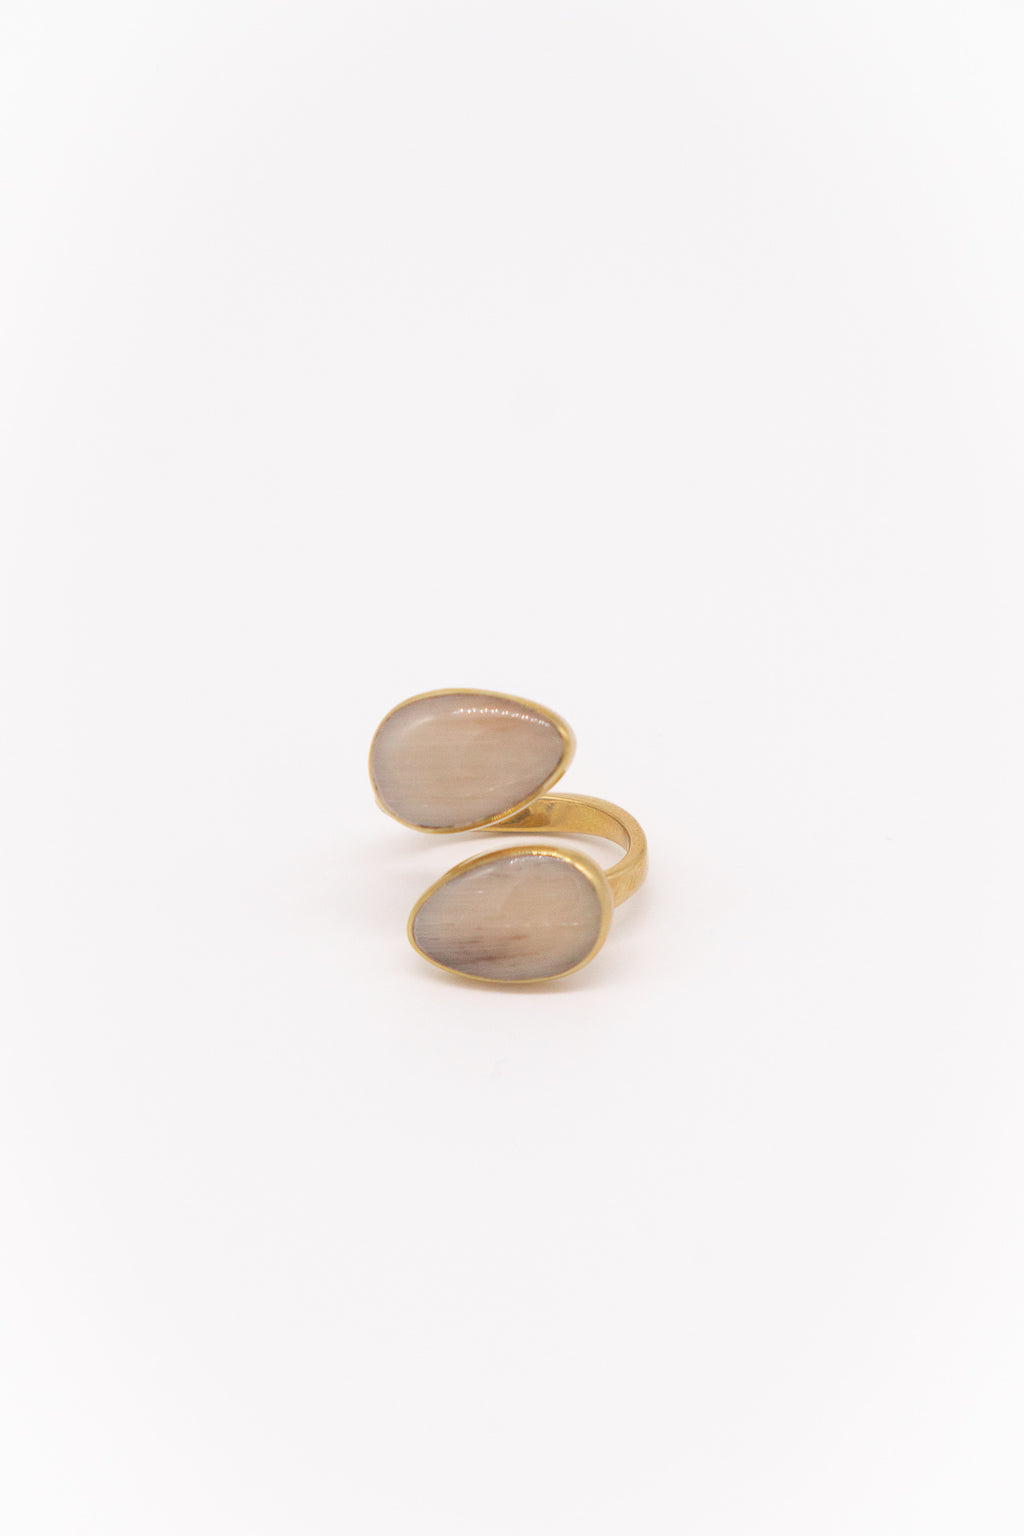 Soko Indra Horn Statement Ring in Brass in Natural Horn